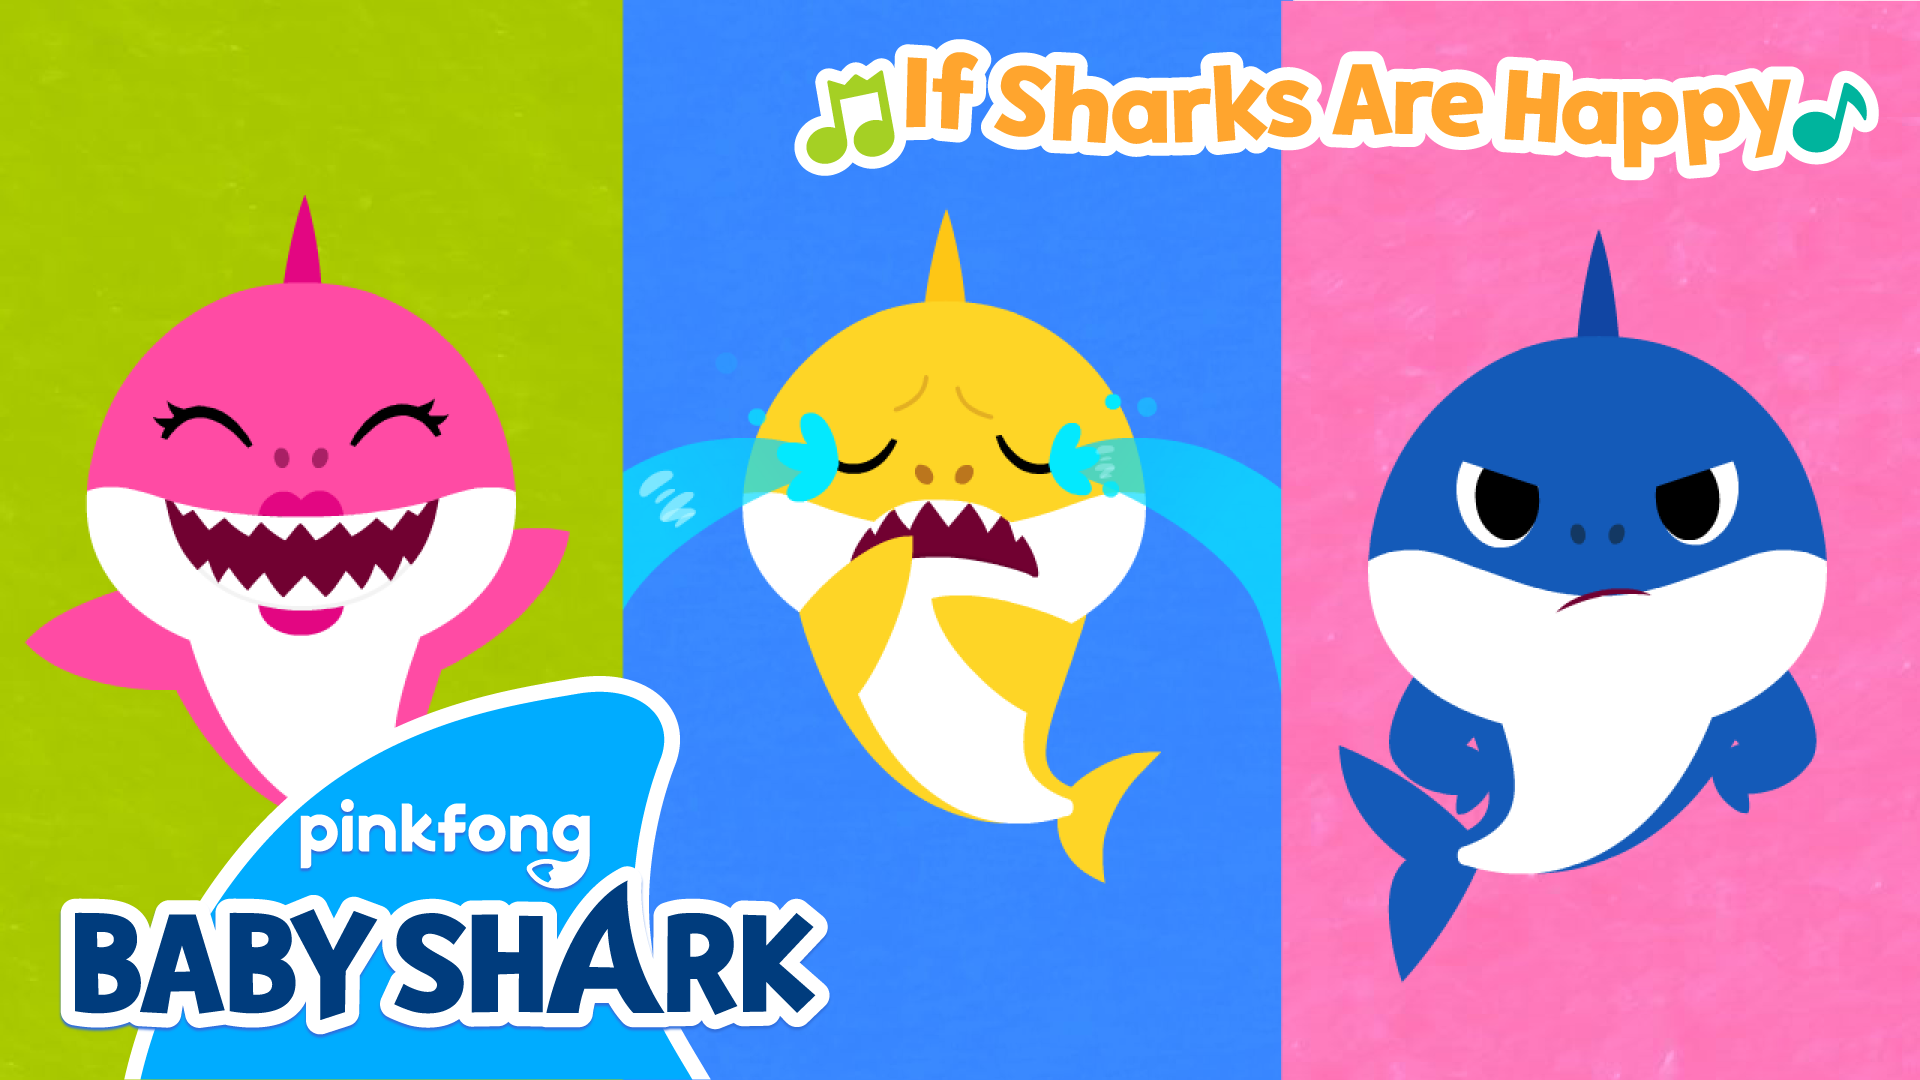 Pinkfong! If Sharks Are Happy